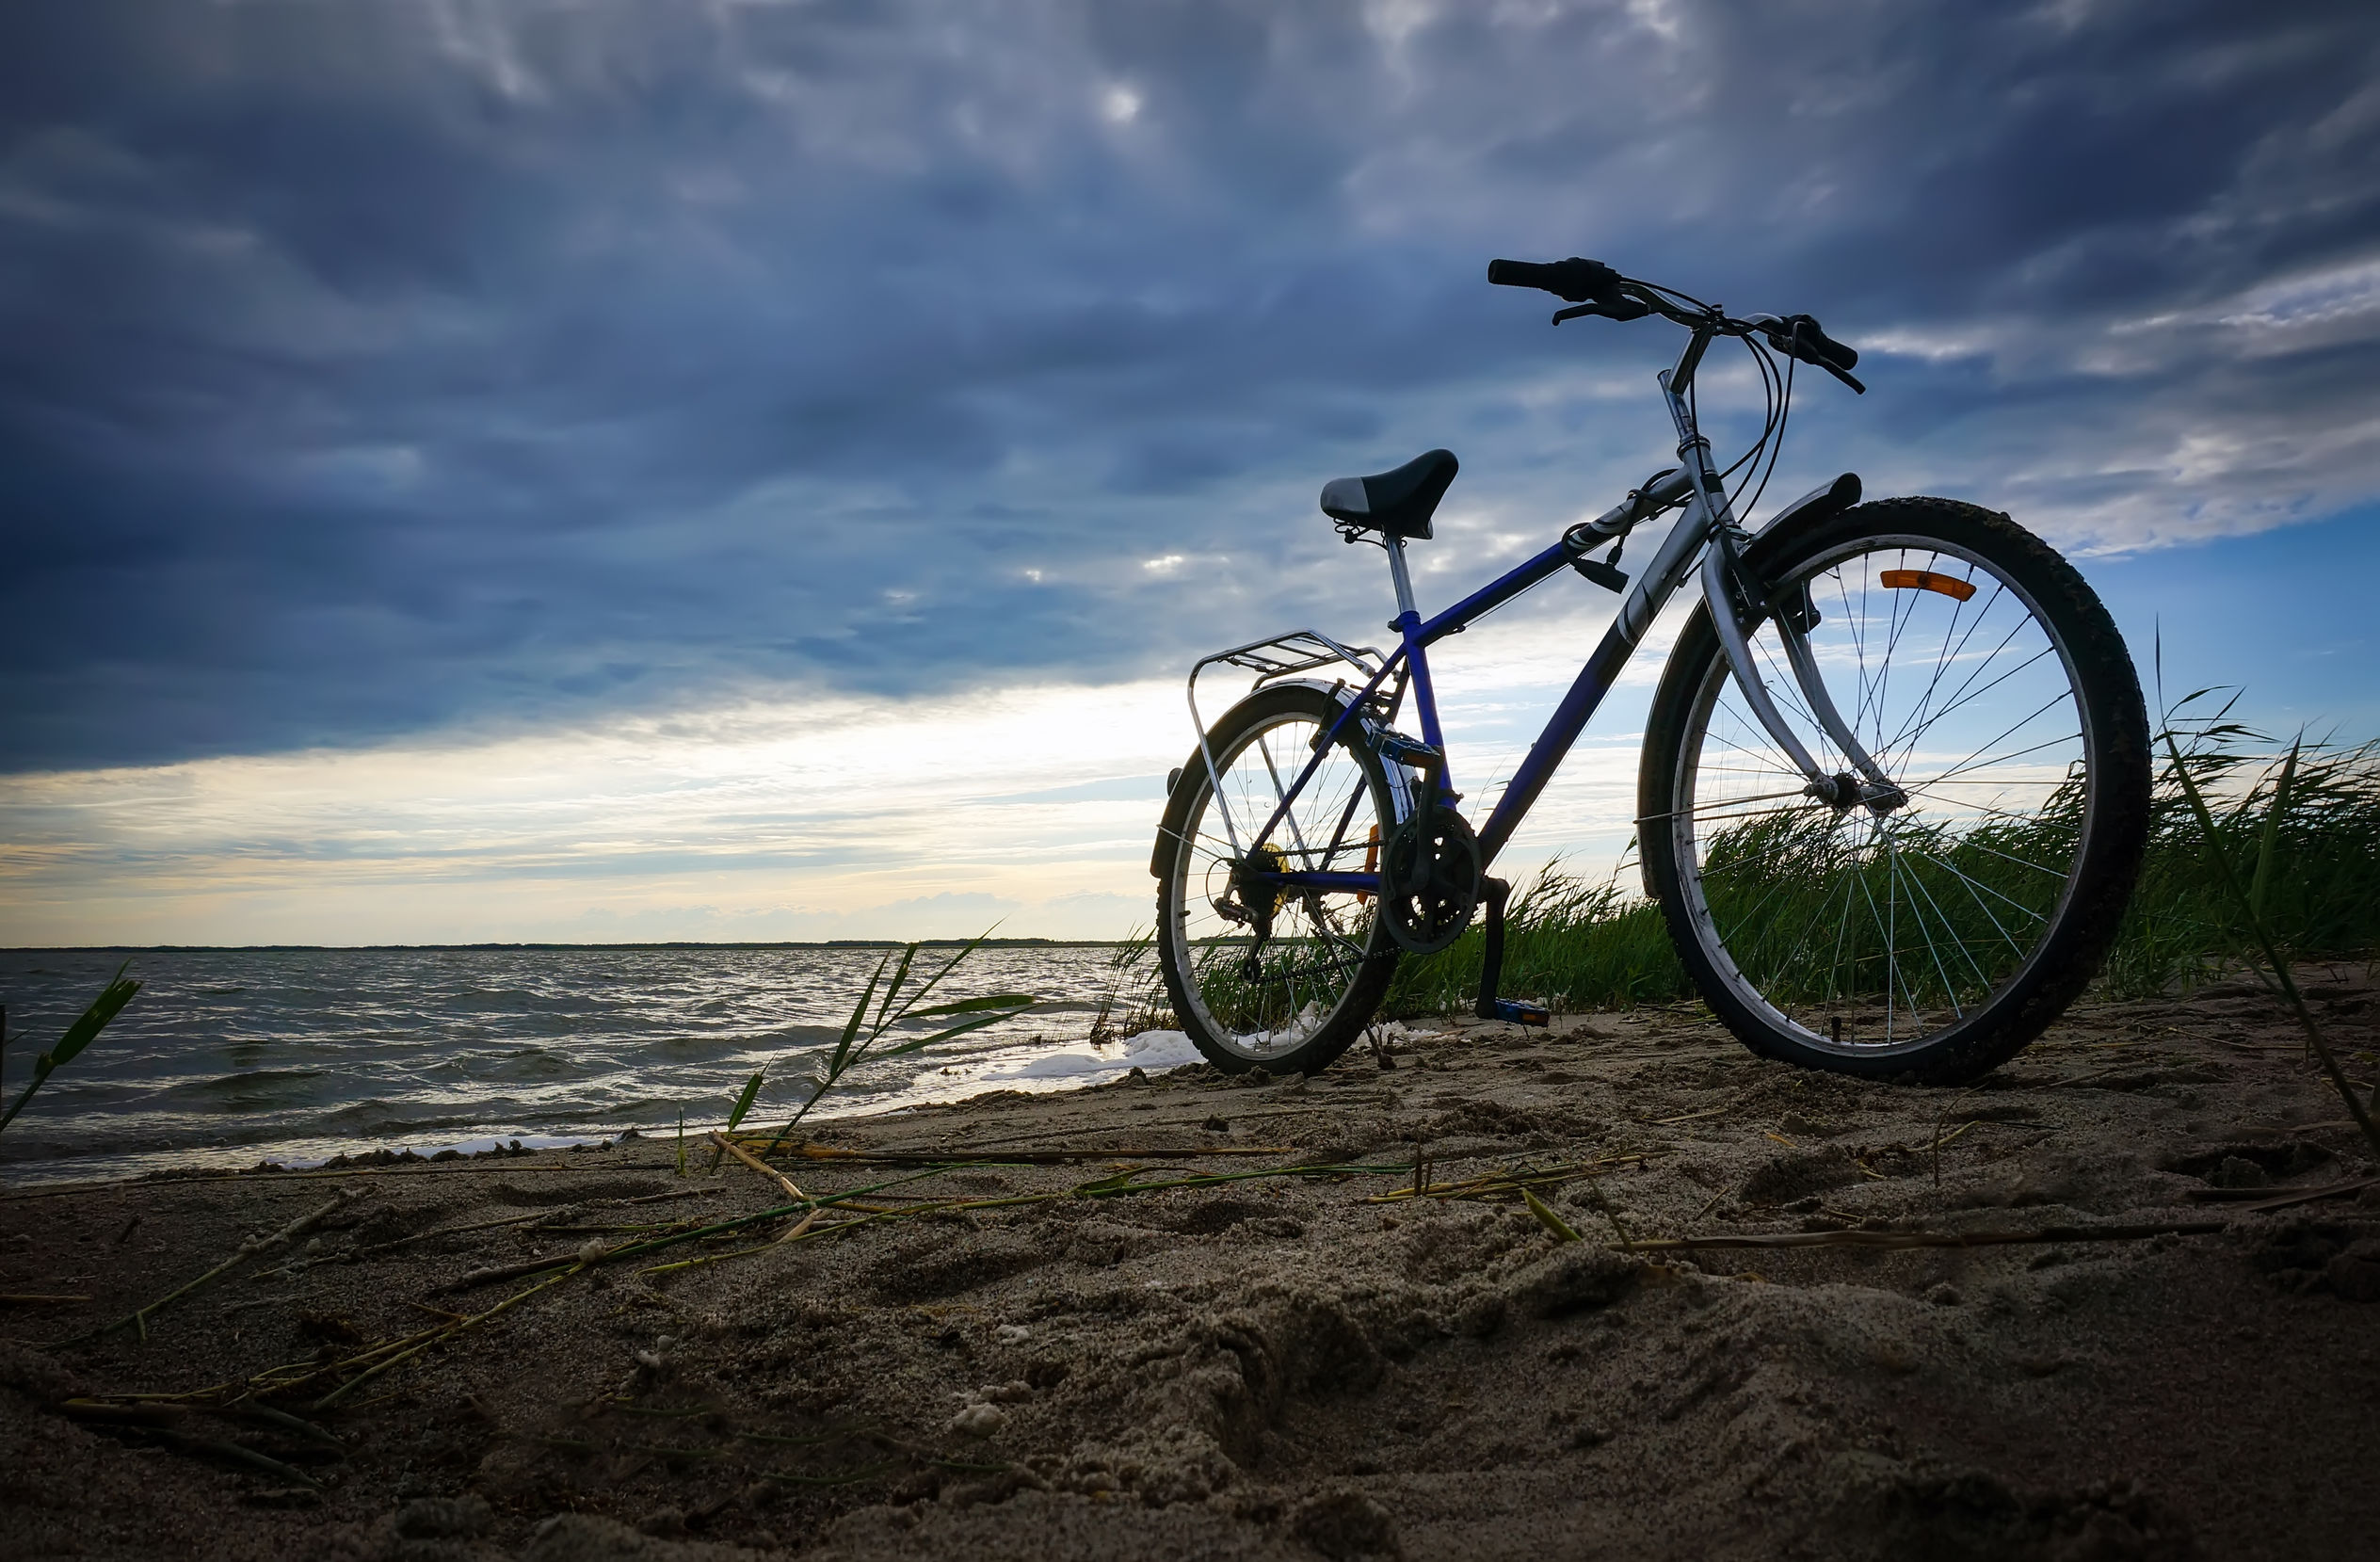 bicycle alone on a beach